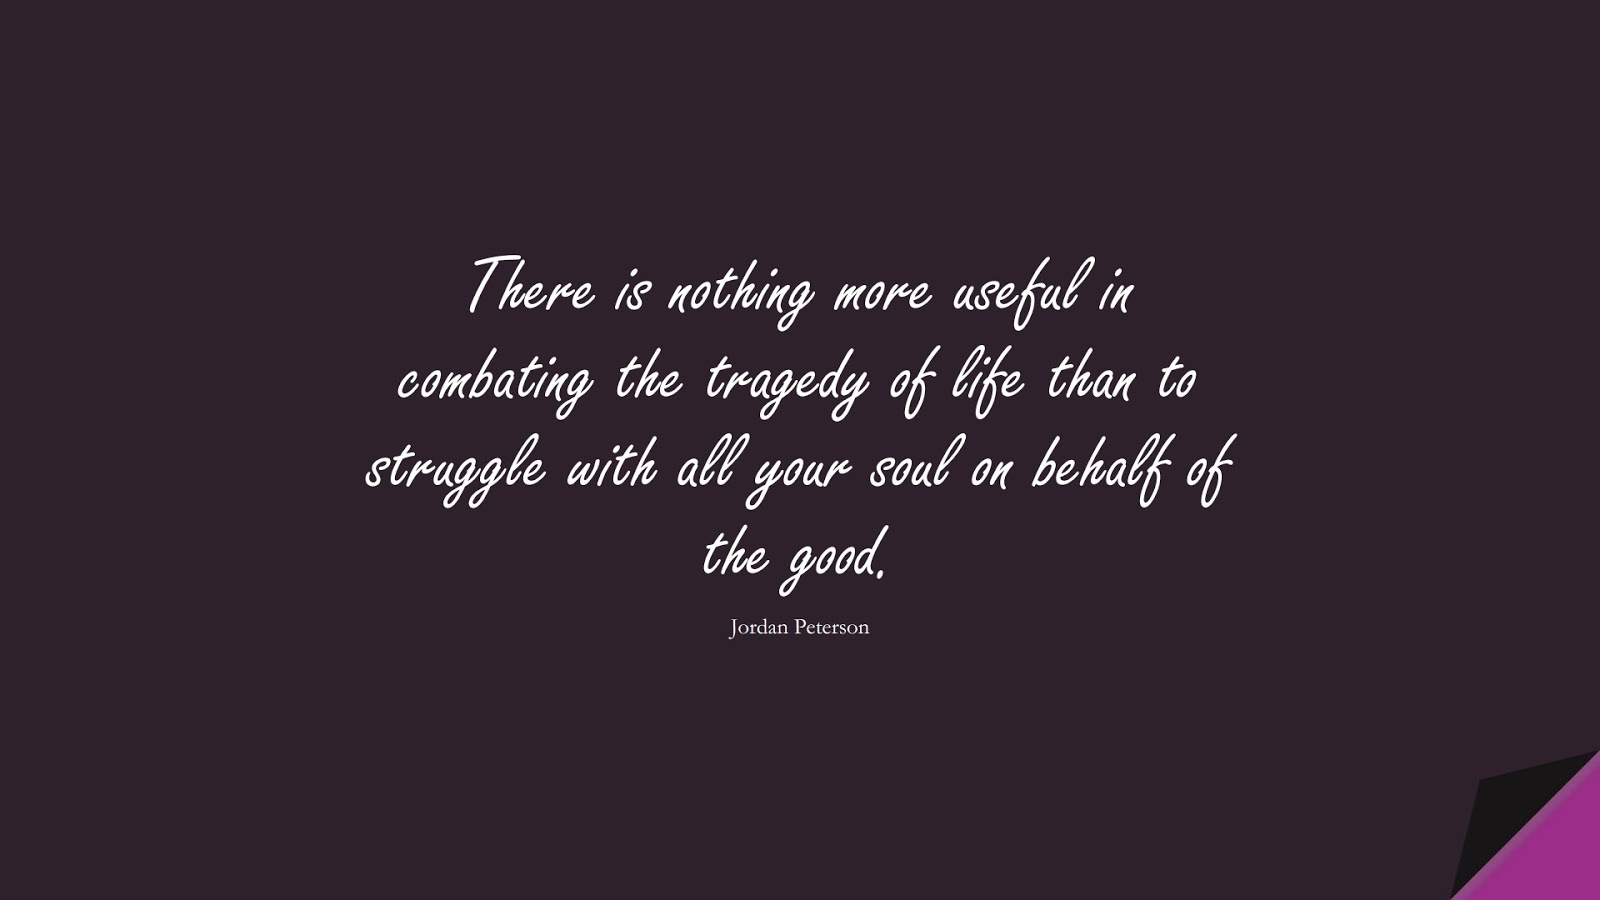 There is nothing more useful in combating the tragedy of life than to struggle with all your soul on behalf of the good. (Jordan Peterson);  #CourageQuotes